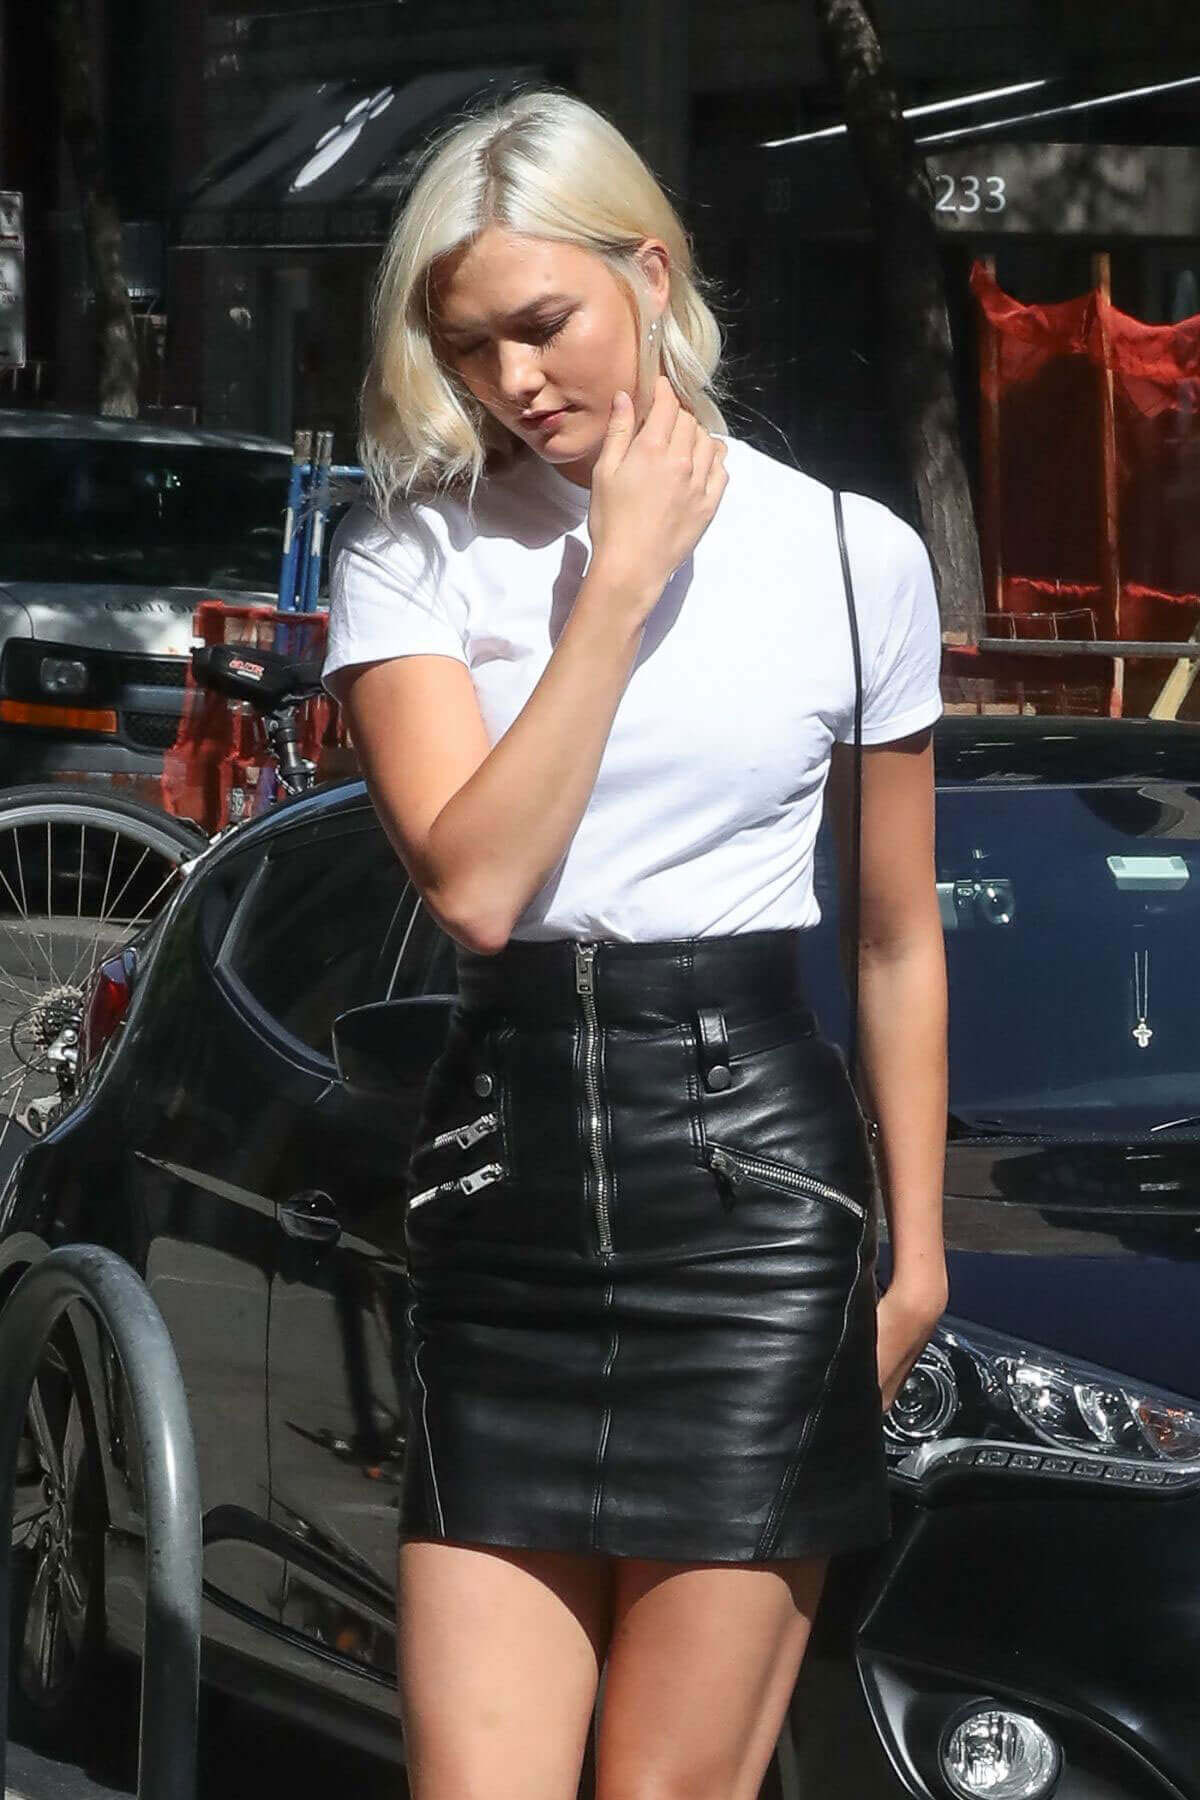 Karlie Kloss wears Shorts show off legs Out for Lunch in New York